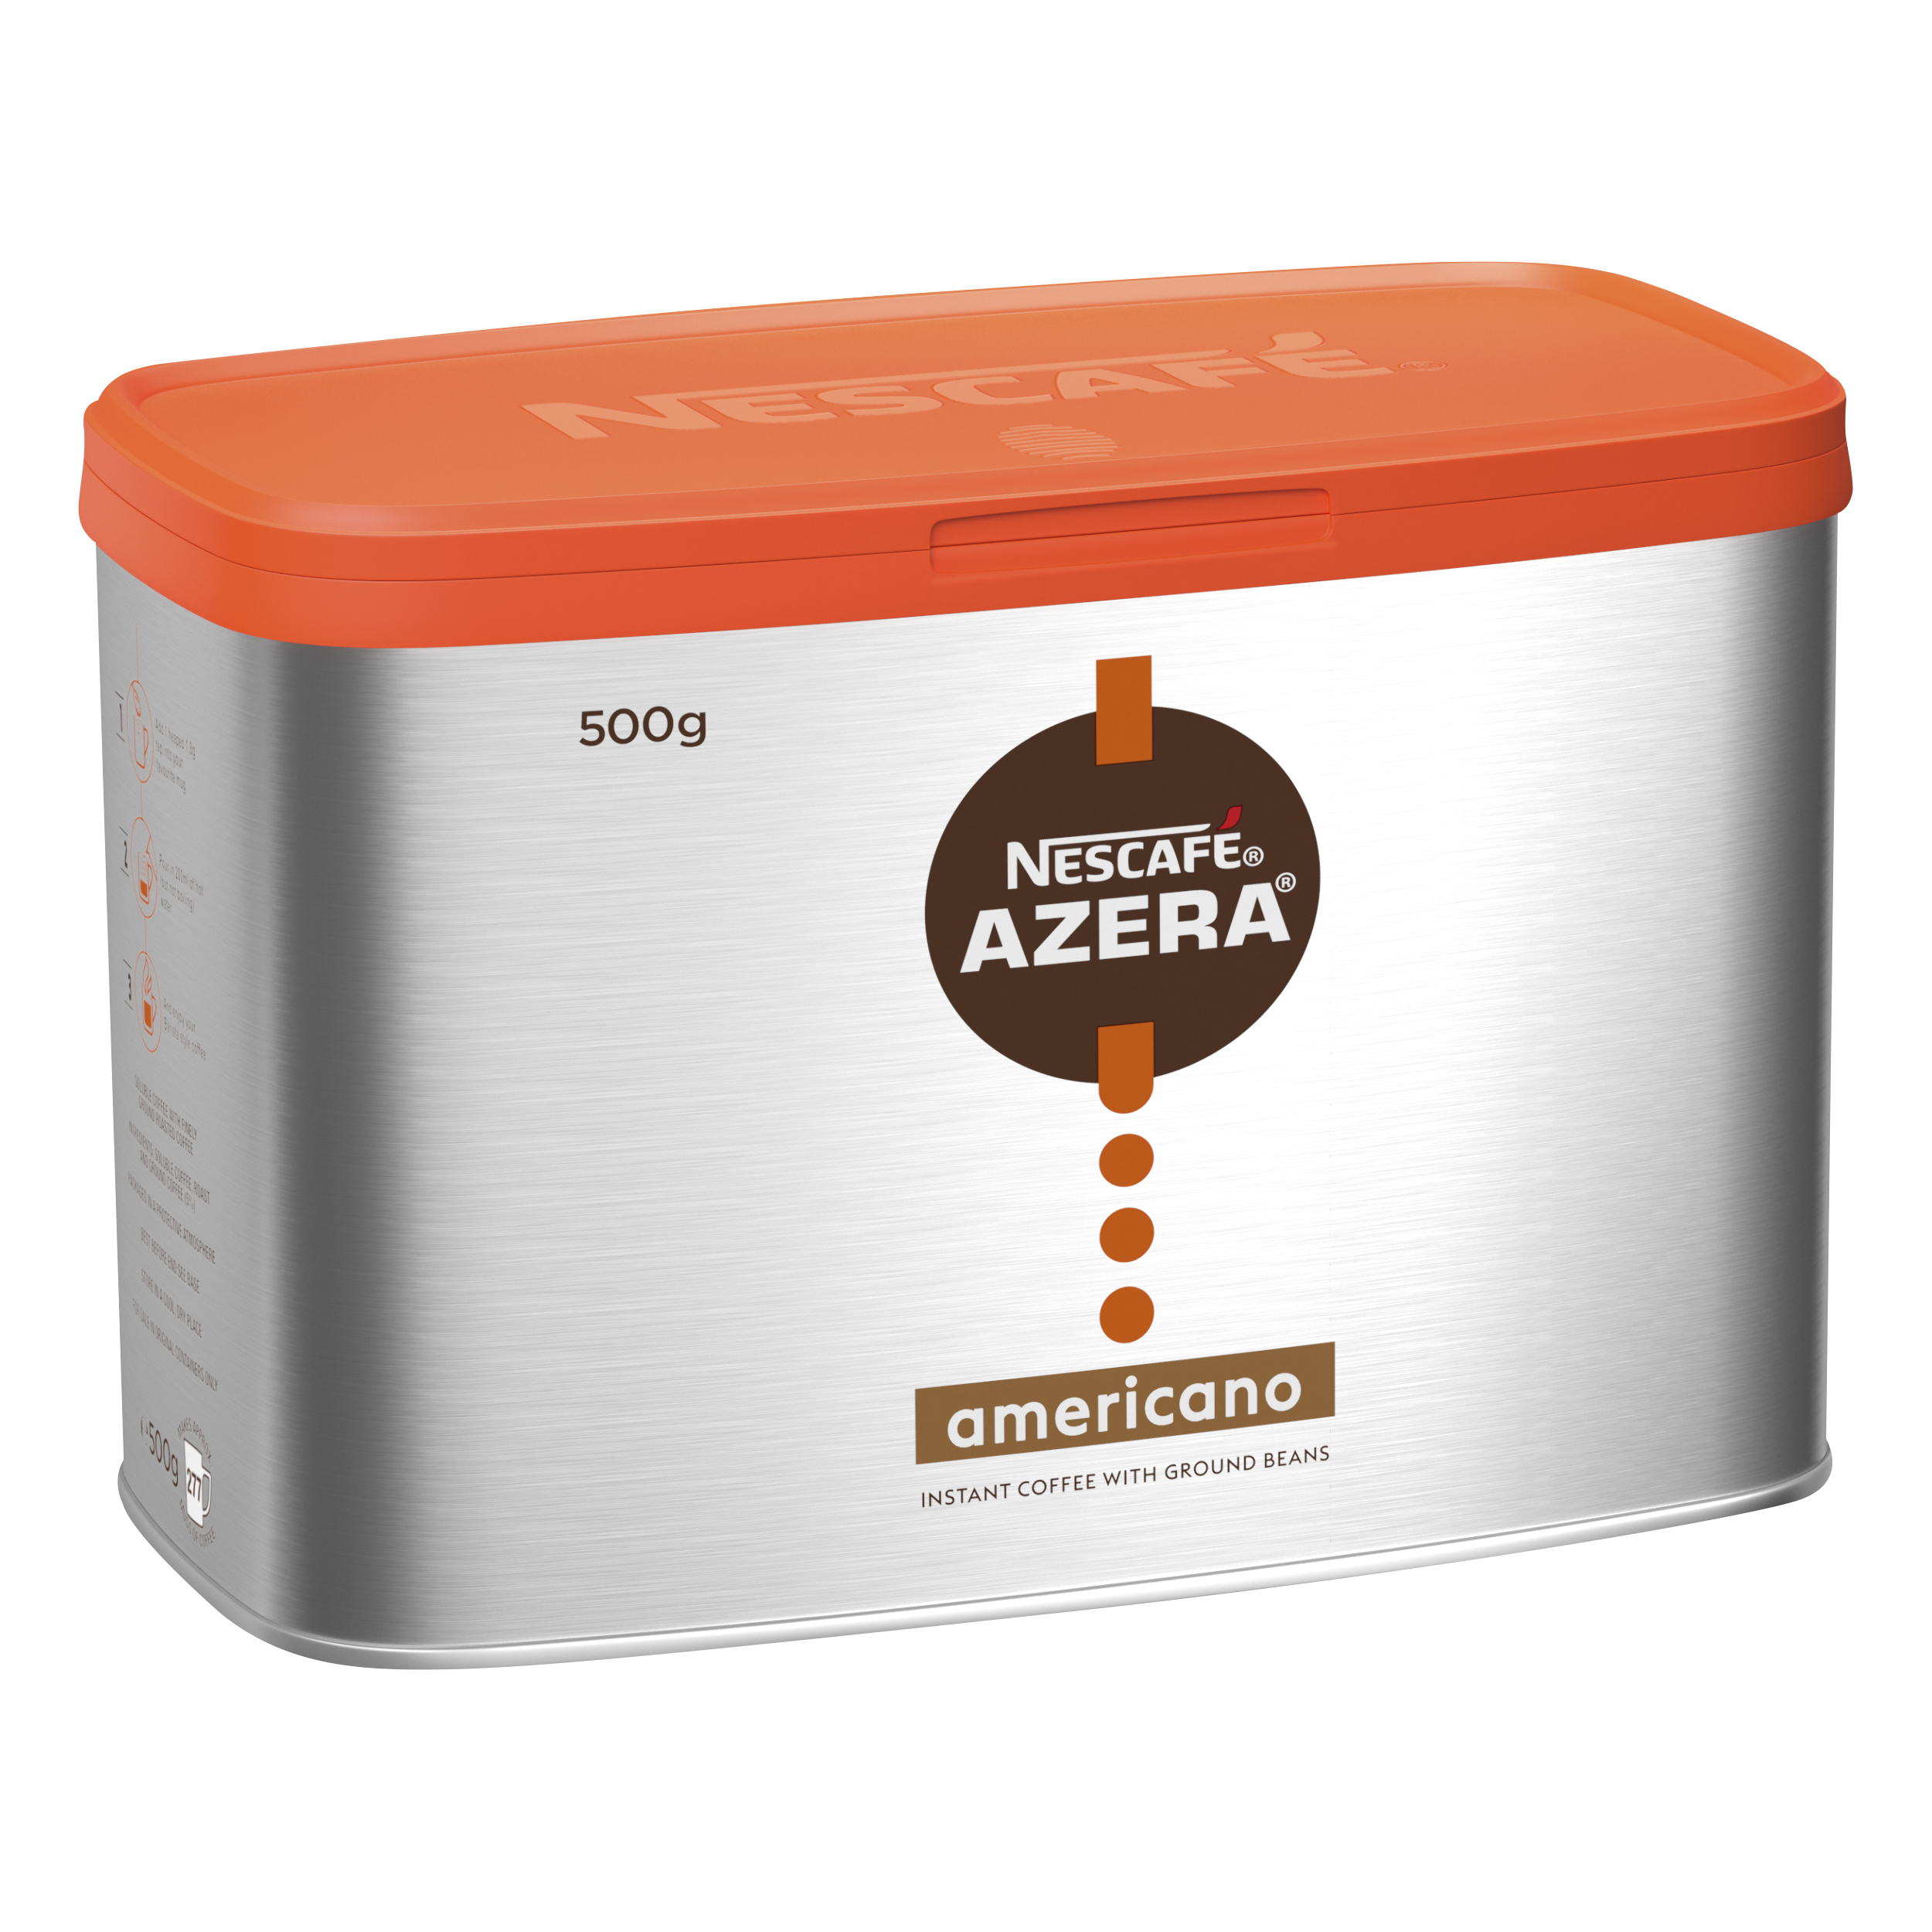 Coffee Nescafe Azera Instant Coffee Americano 500g Ref 12284221